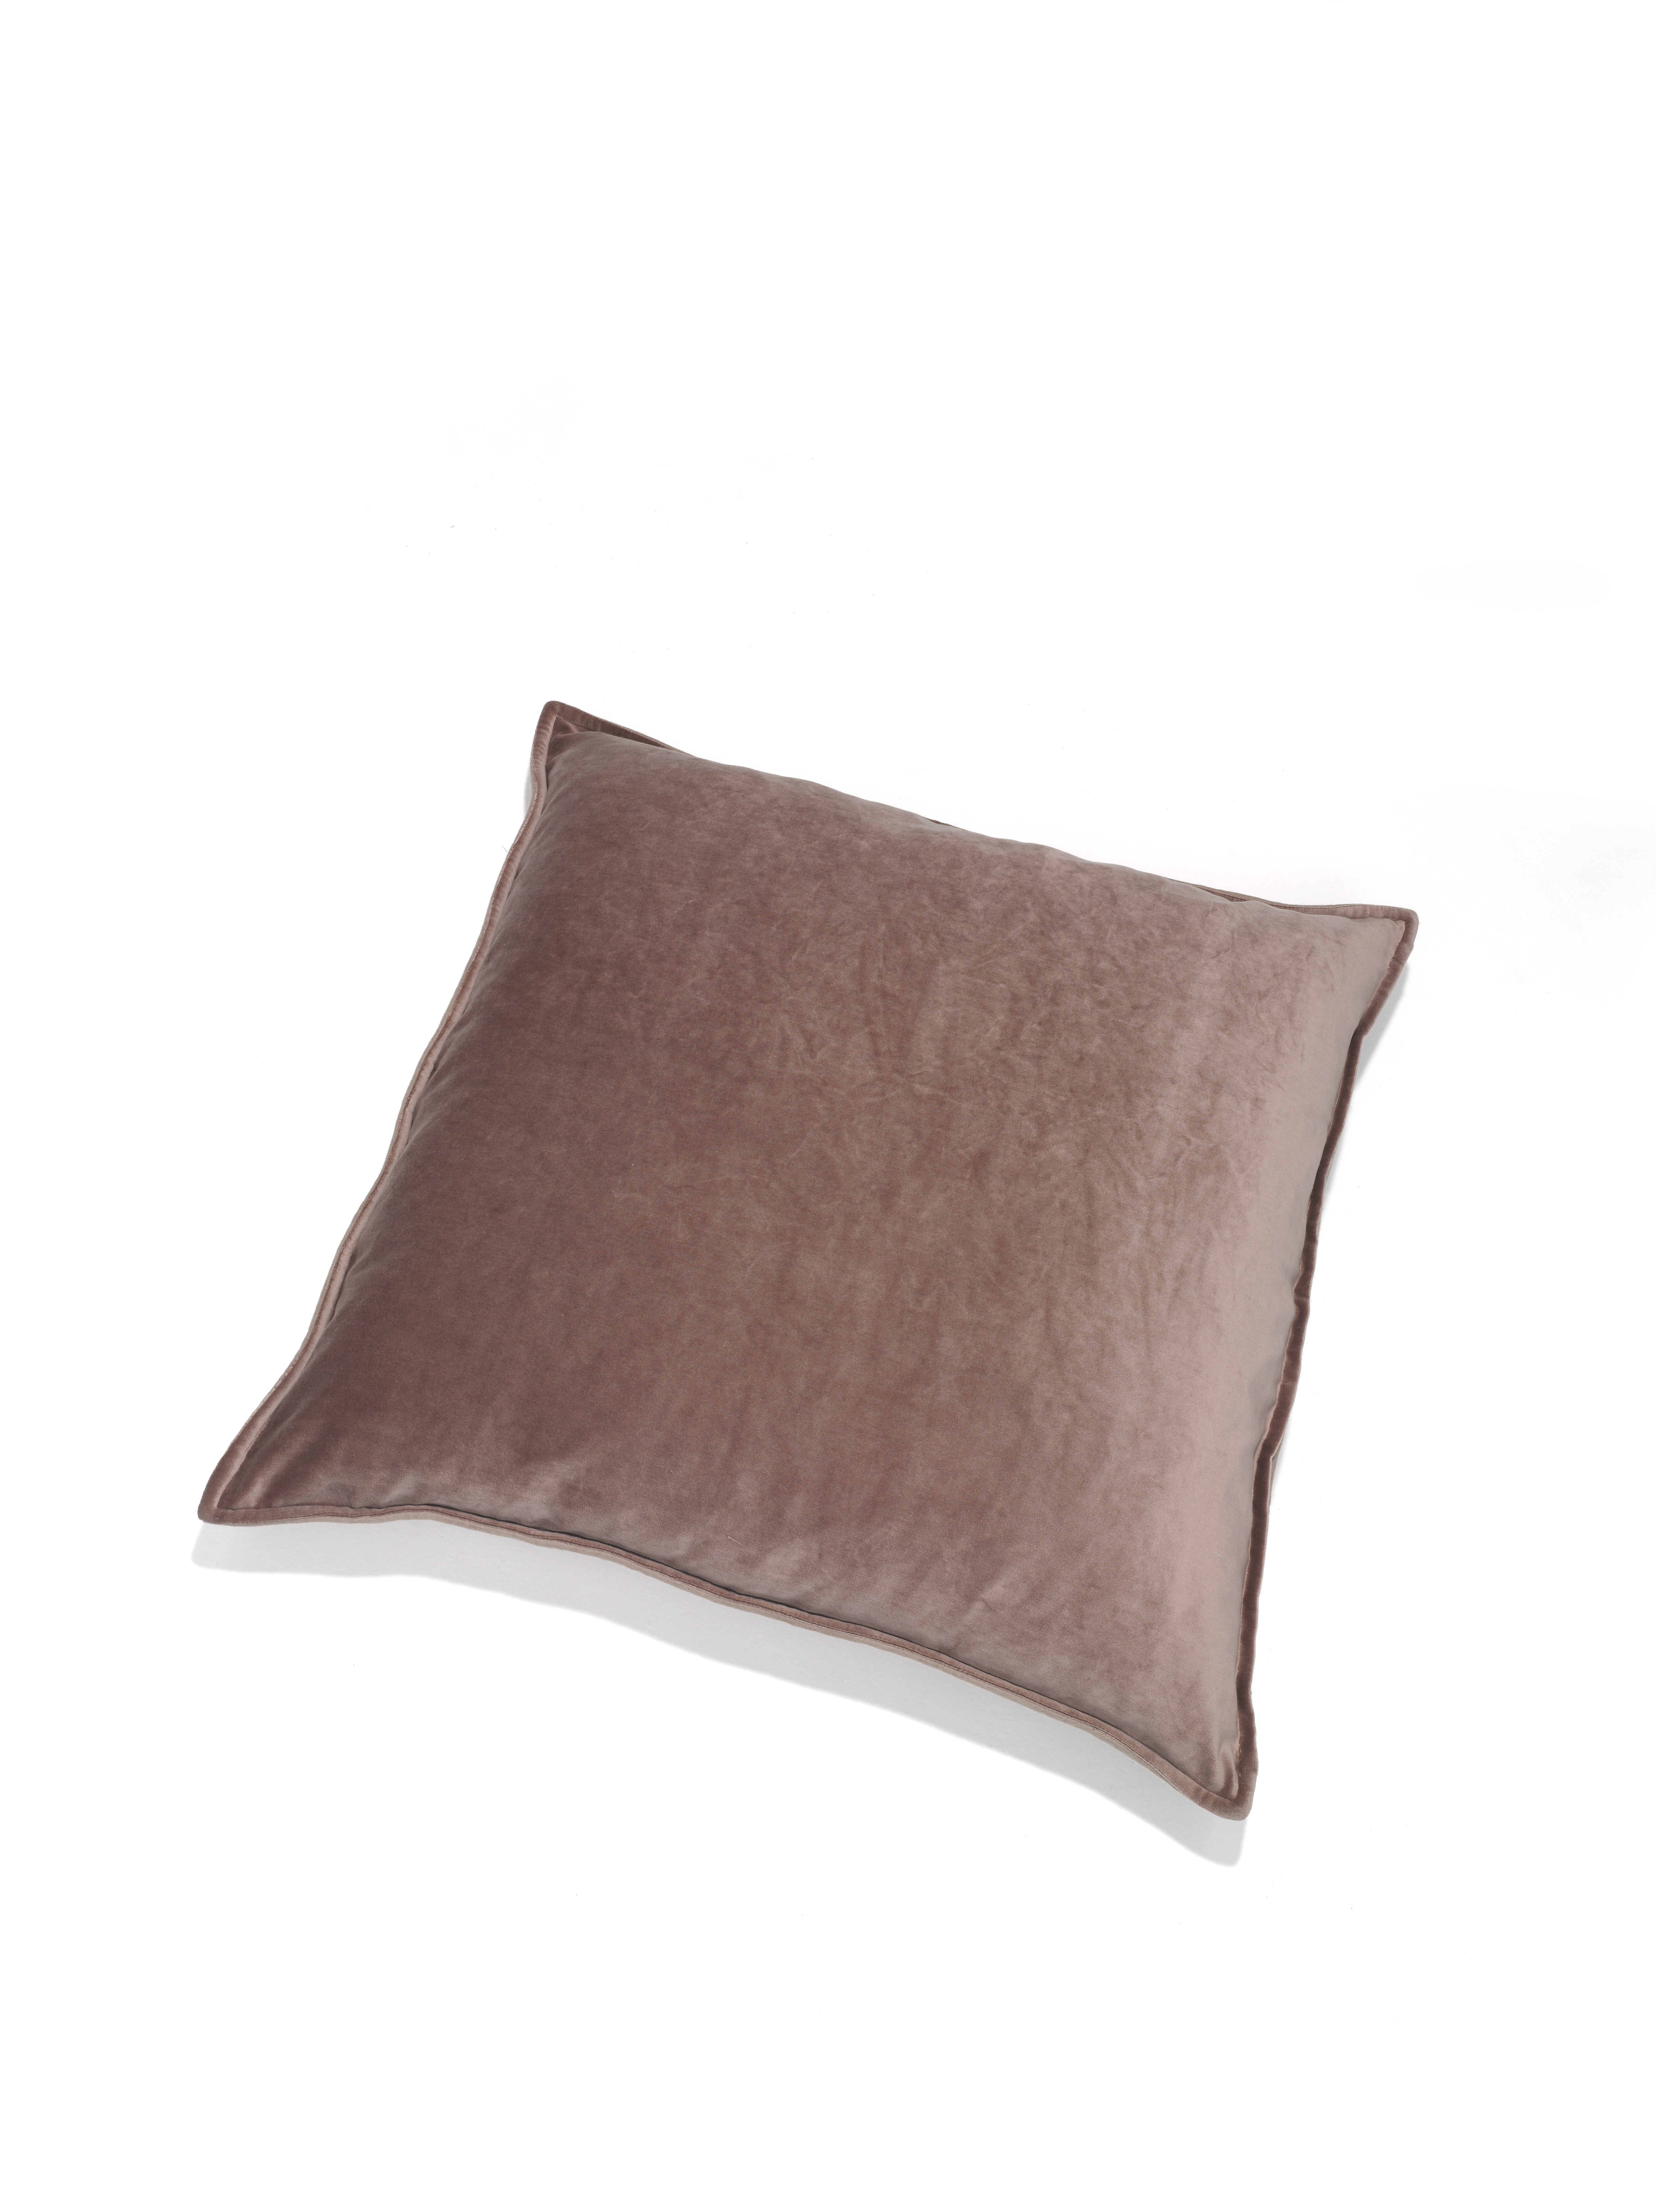 M_and_Otto for Linteloo Glow floor pillow back